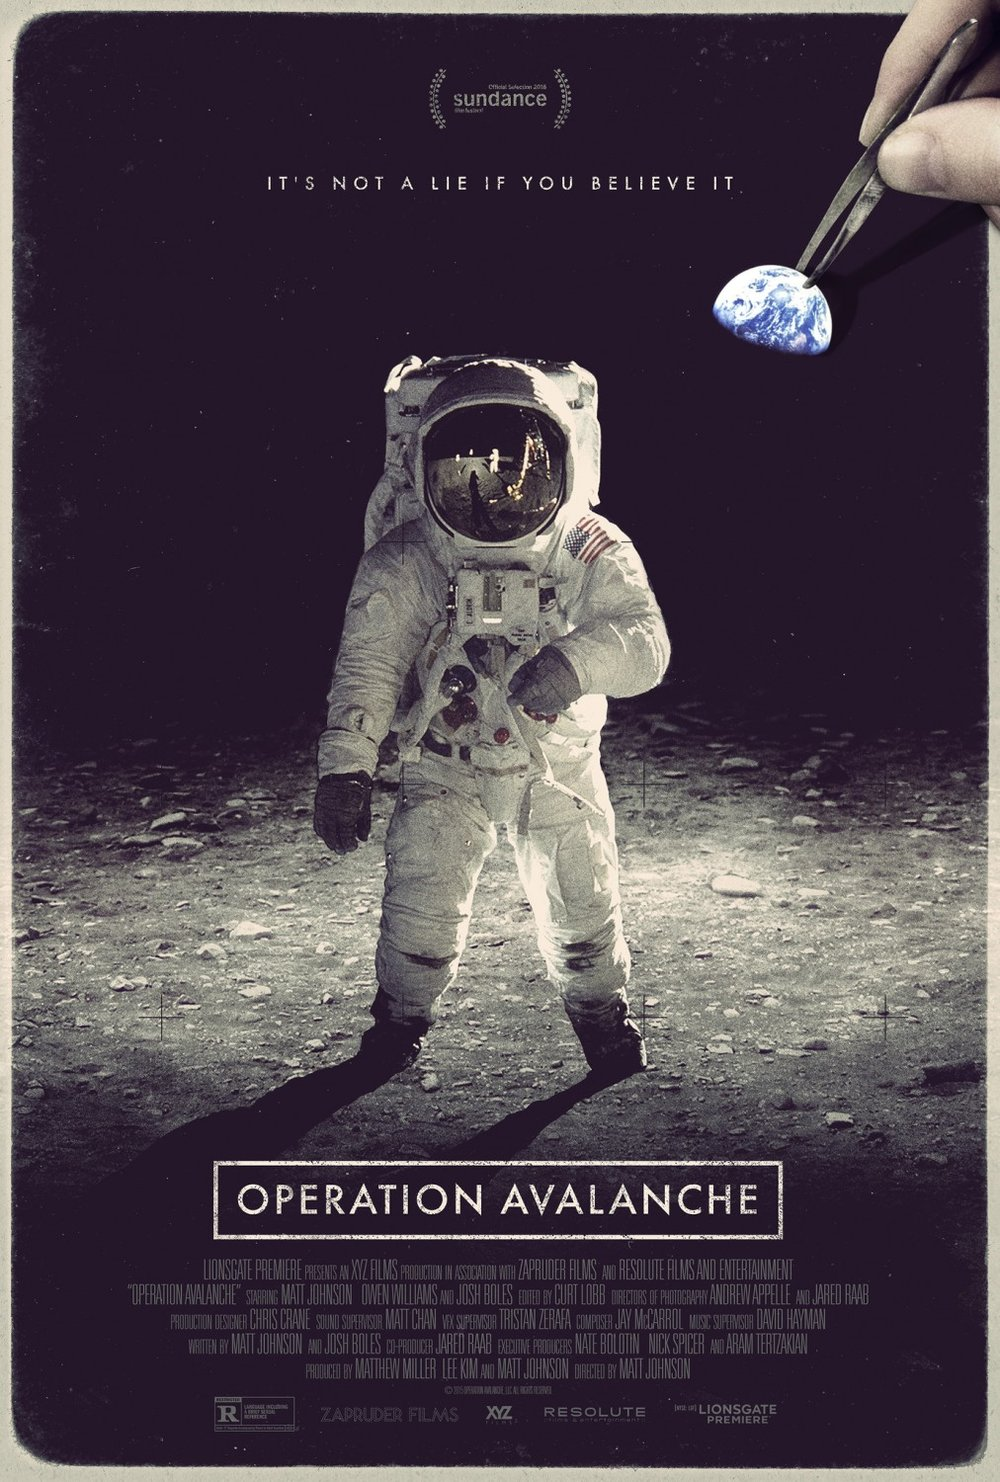 Operation Avalanche  (Artist unknown)